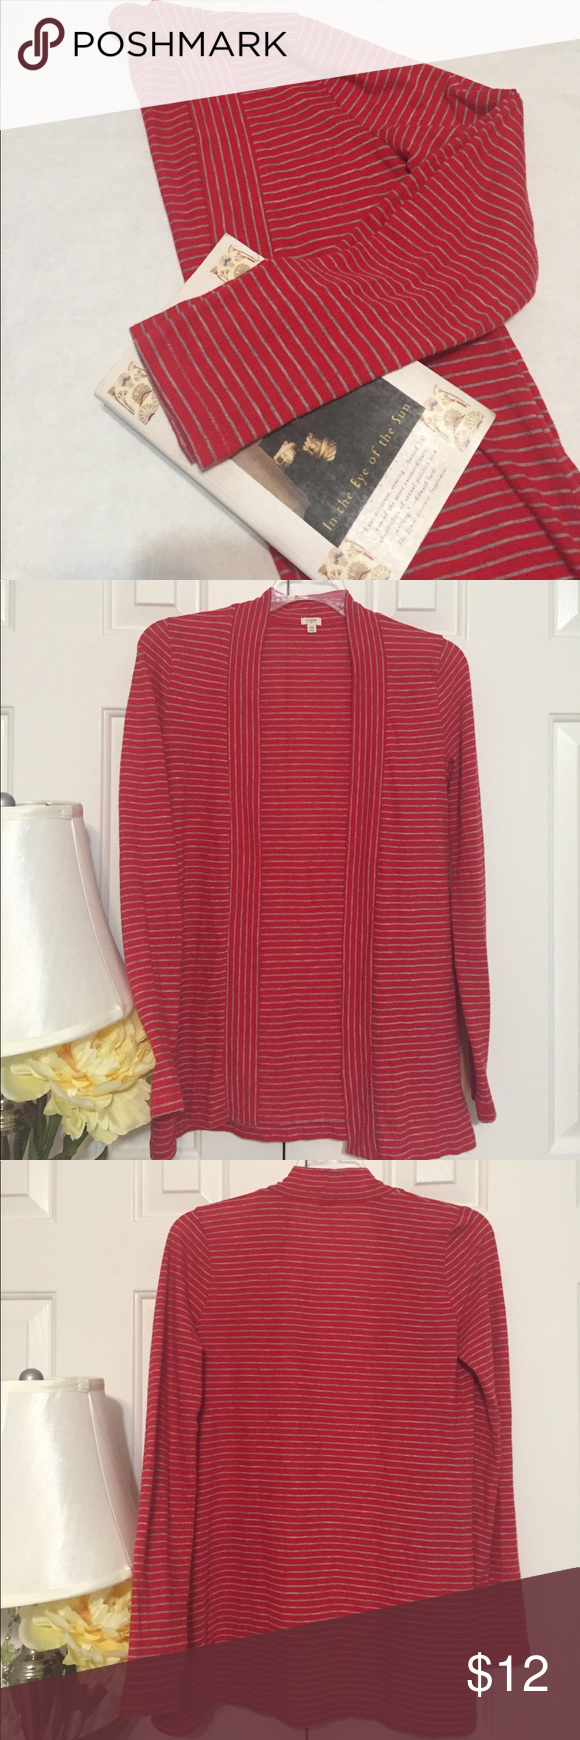 J. Crew Stripe Always Cardigan J.Crew Always Cardigan.  Grey stripes on red. Open front,  lightweight cardigan/ duster. Cotton/Polyester. Great preloved condition. No rips or stains. Stock pick for fit and styling show only. J. Crew Sweaters Cardigans